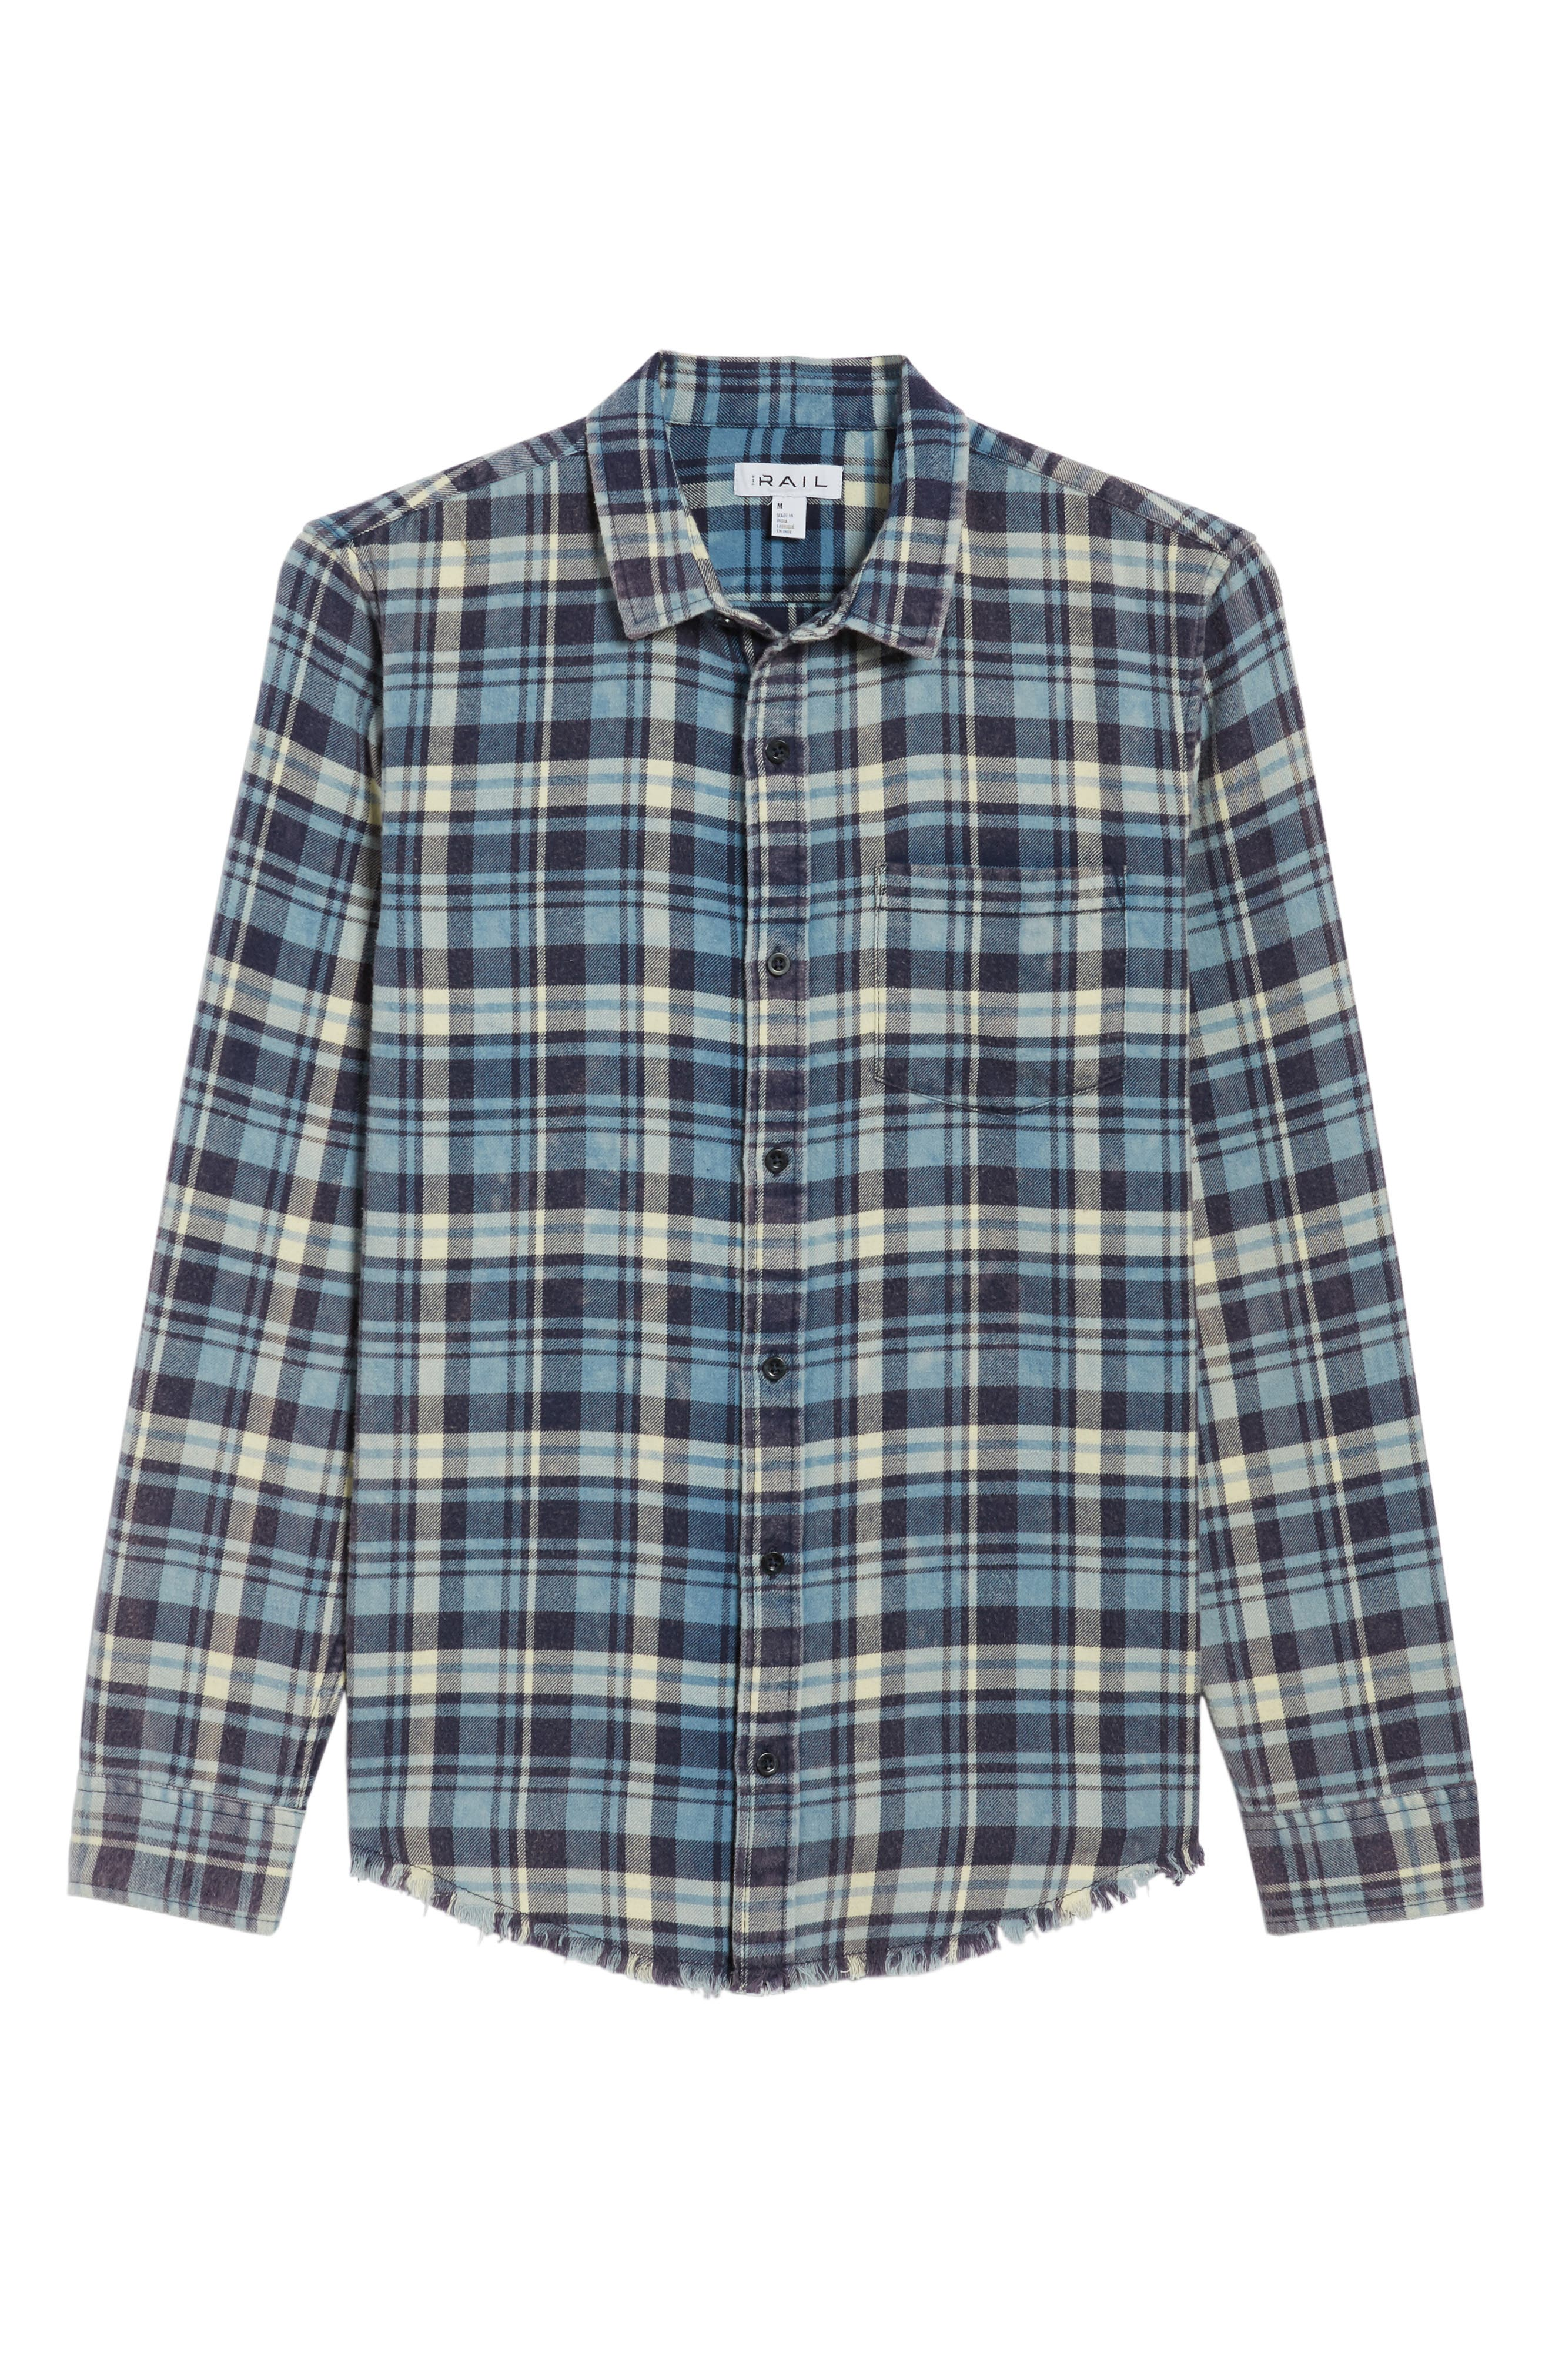 Plaid Flannel Shirt,                             Alternate thumbnail 6, color,                             420